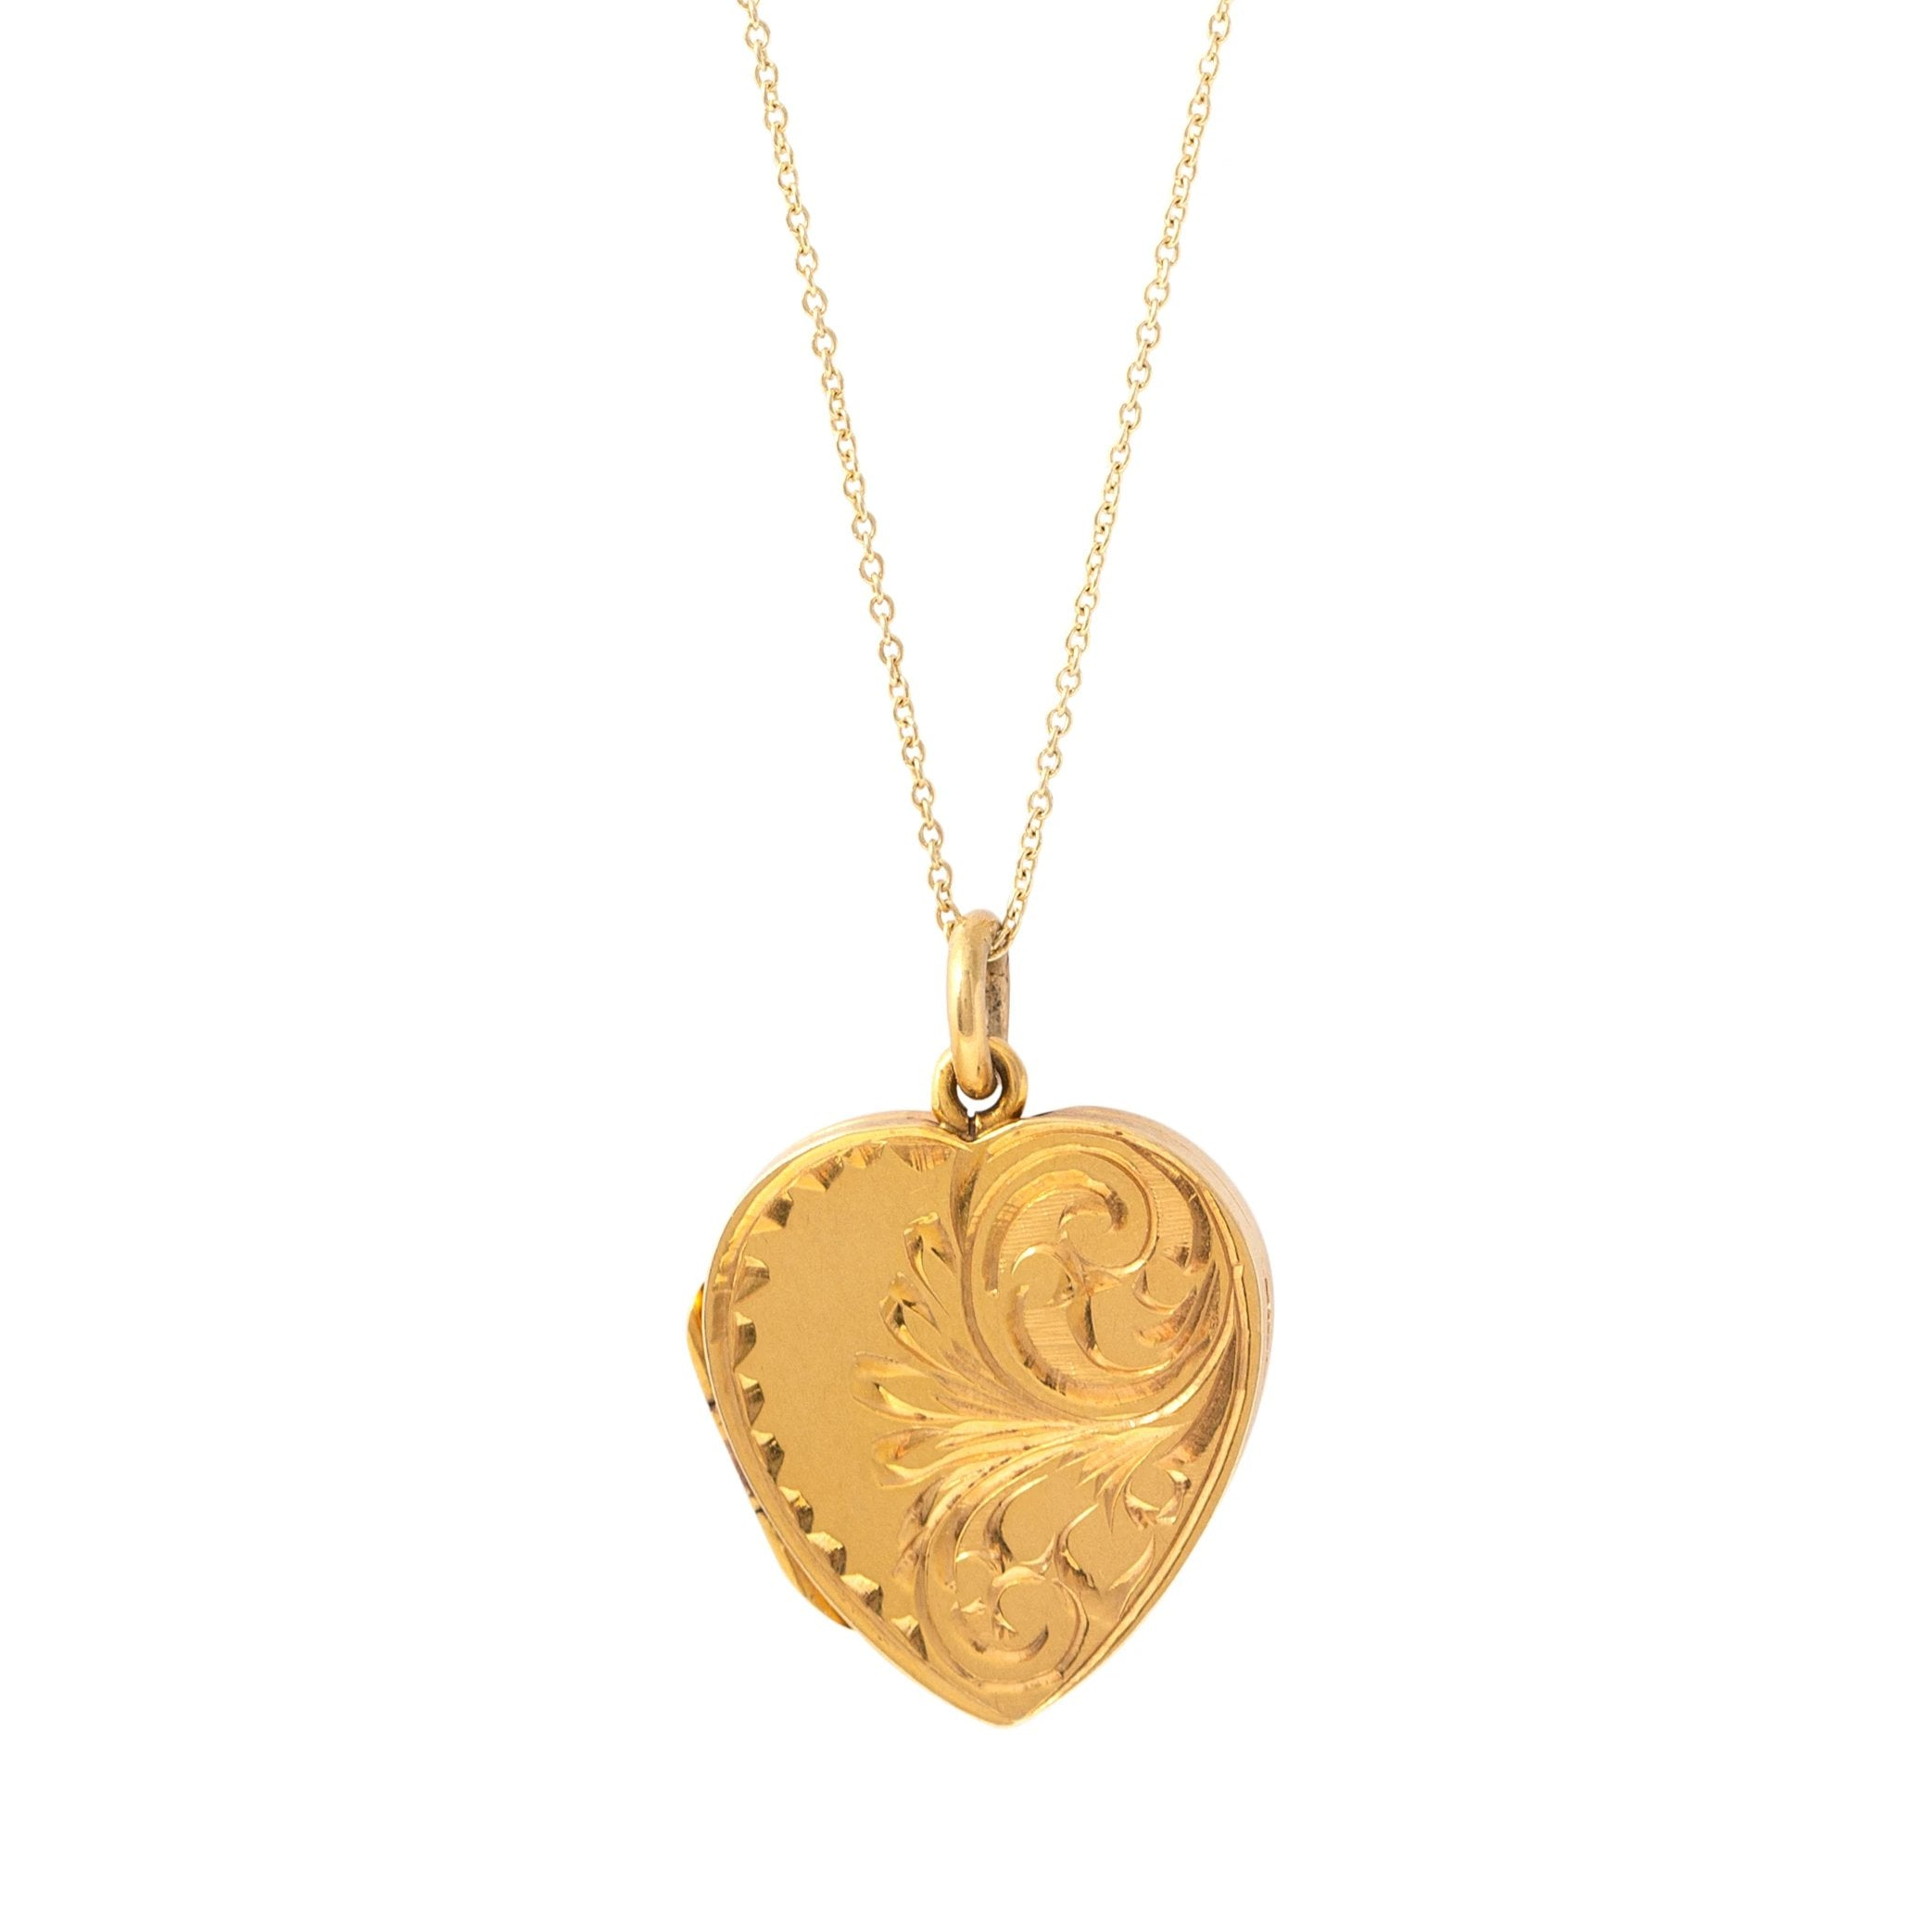 English 9k Yellow Gold Engraved Scrolling Heart Locket